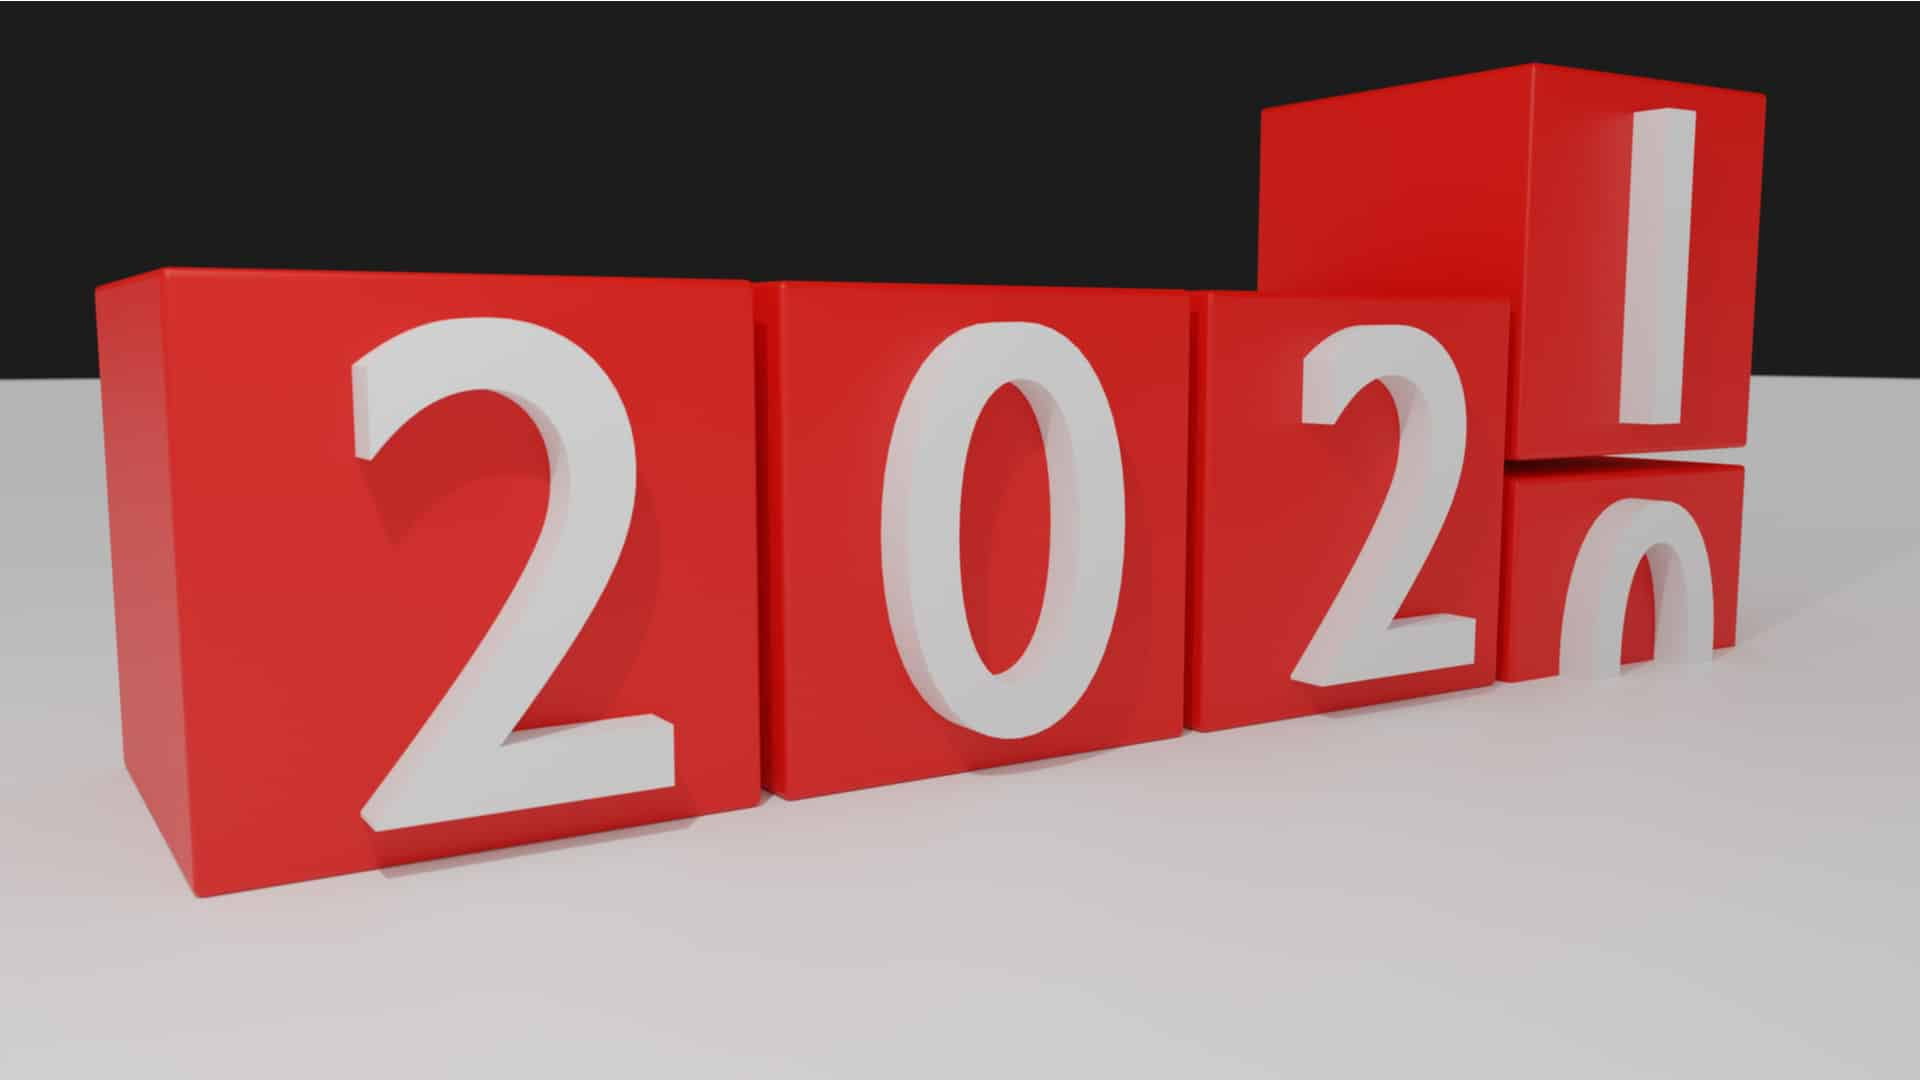 Blocks implying 2020 turning to 2021